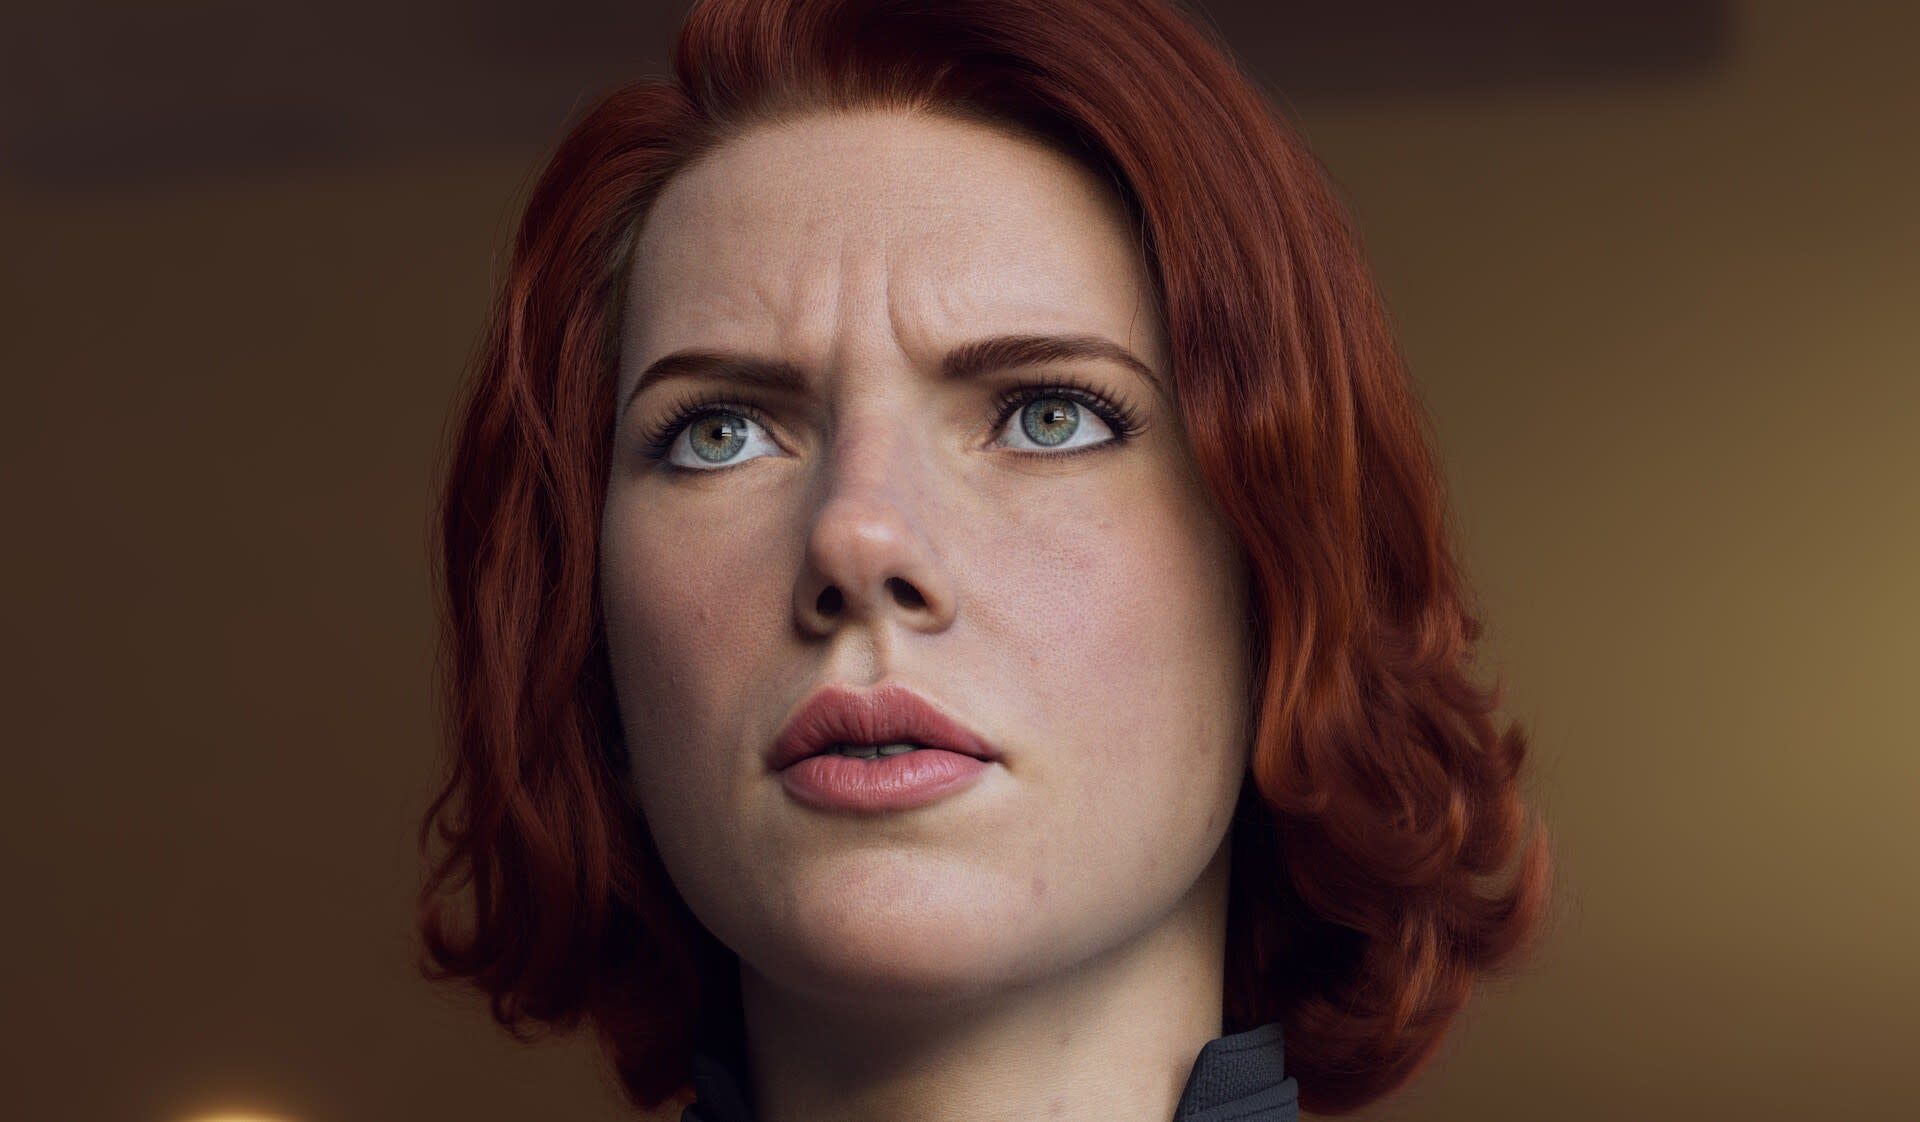 Black Widow Model Is Made Of Polygons, Not Scarlett Johanssons